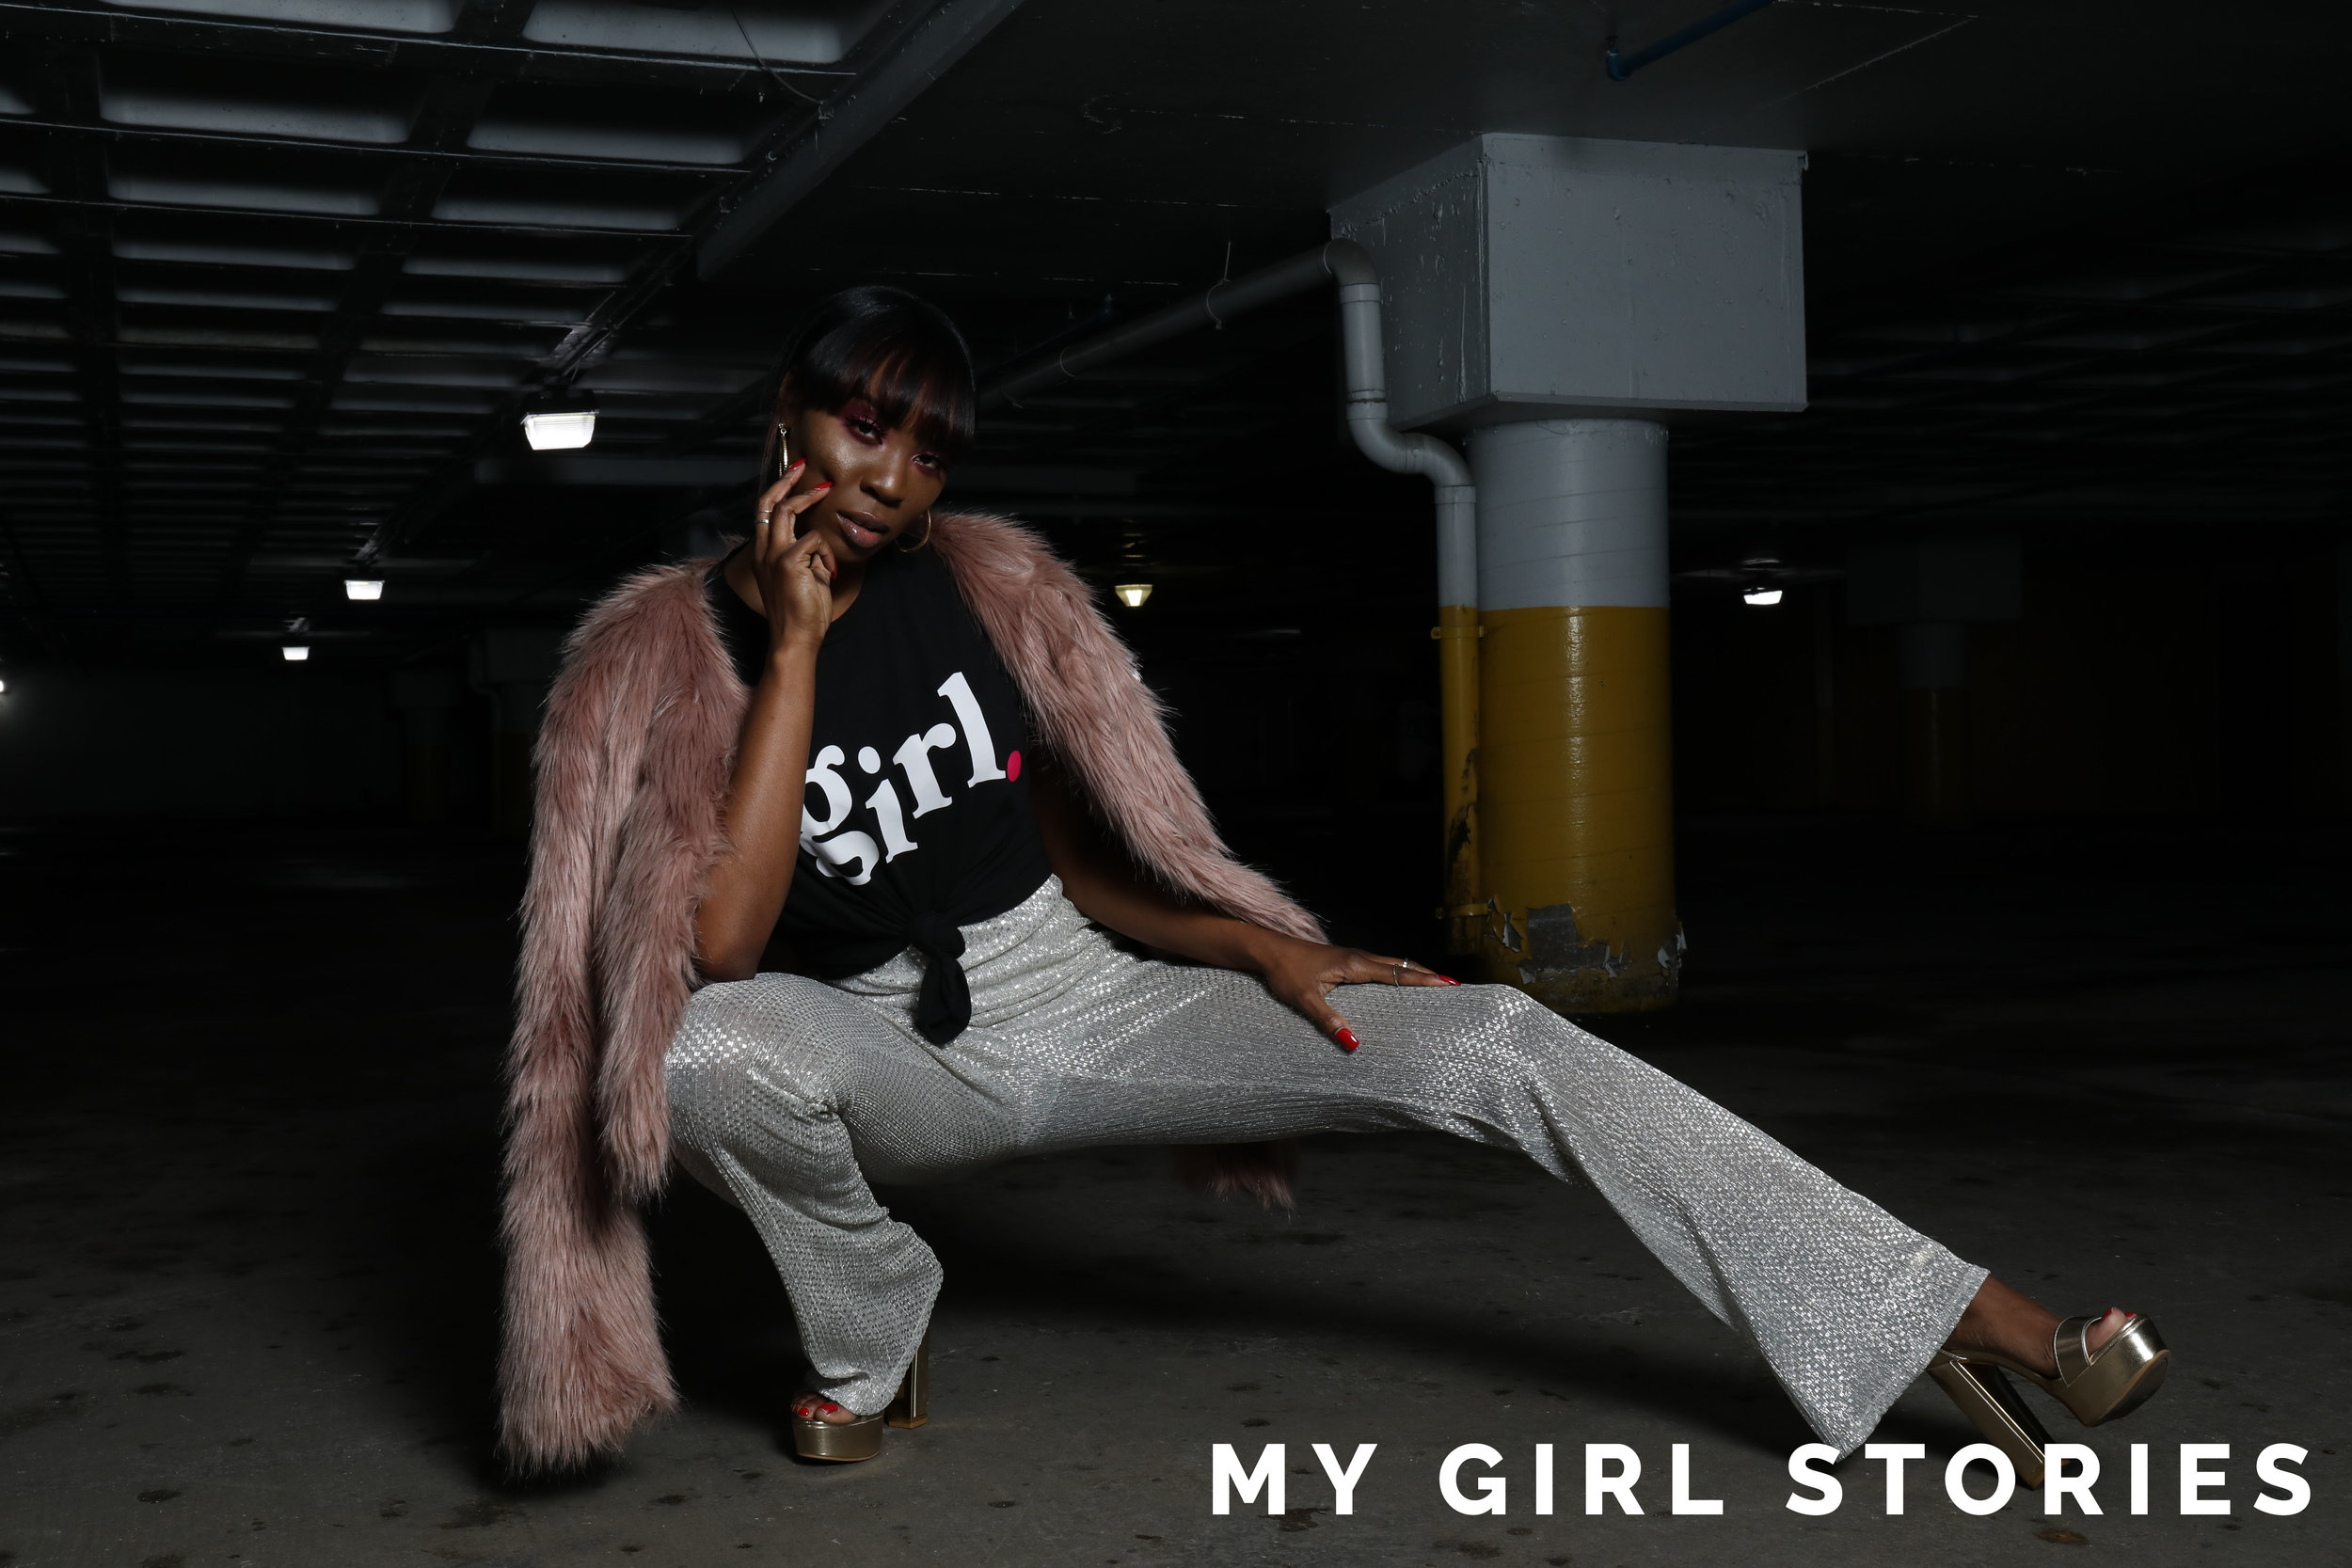 ATLANTA MODEL WHITENEY SUBER ROCKING MY GIRL STORIES TSHIRT BY JASMINE DIANE.jpg